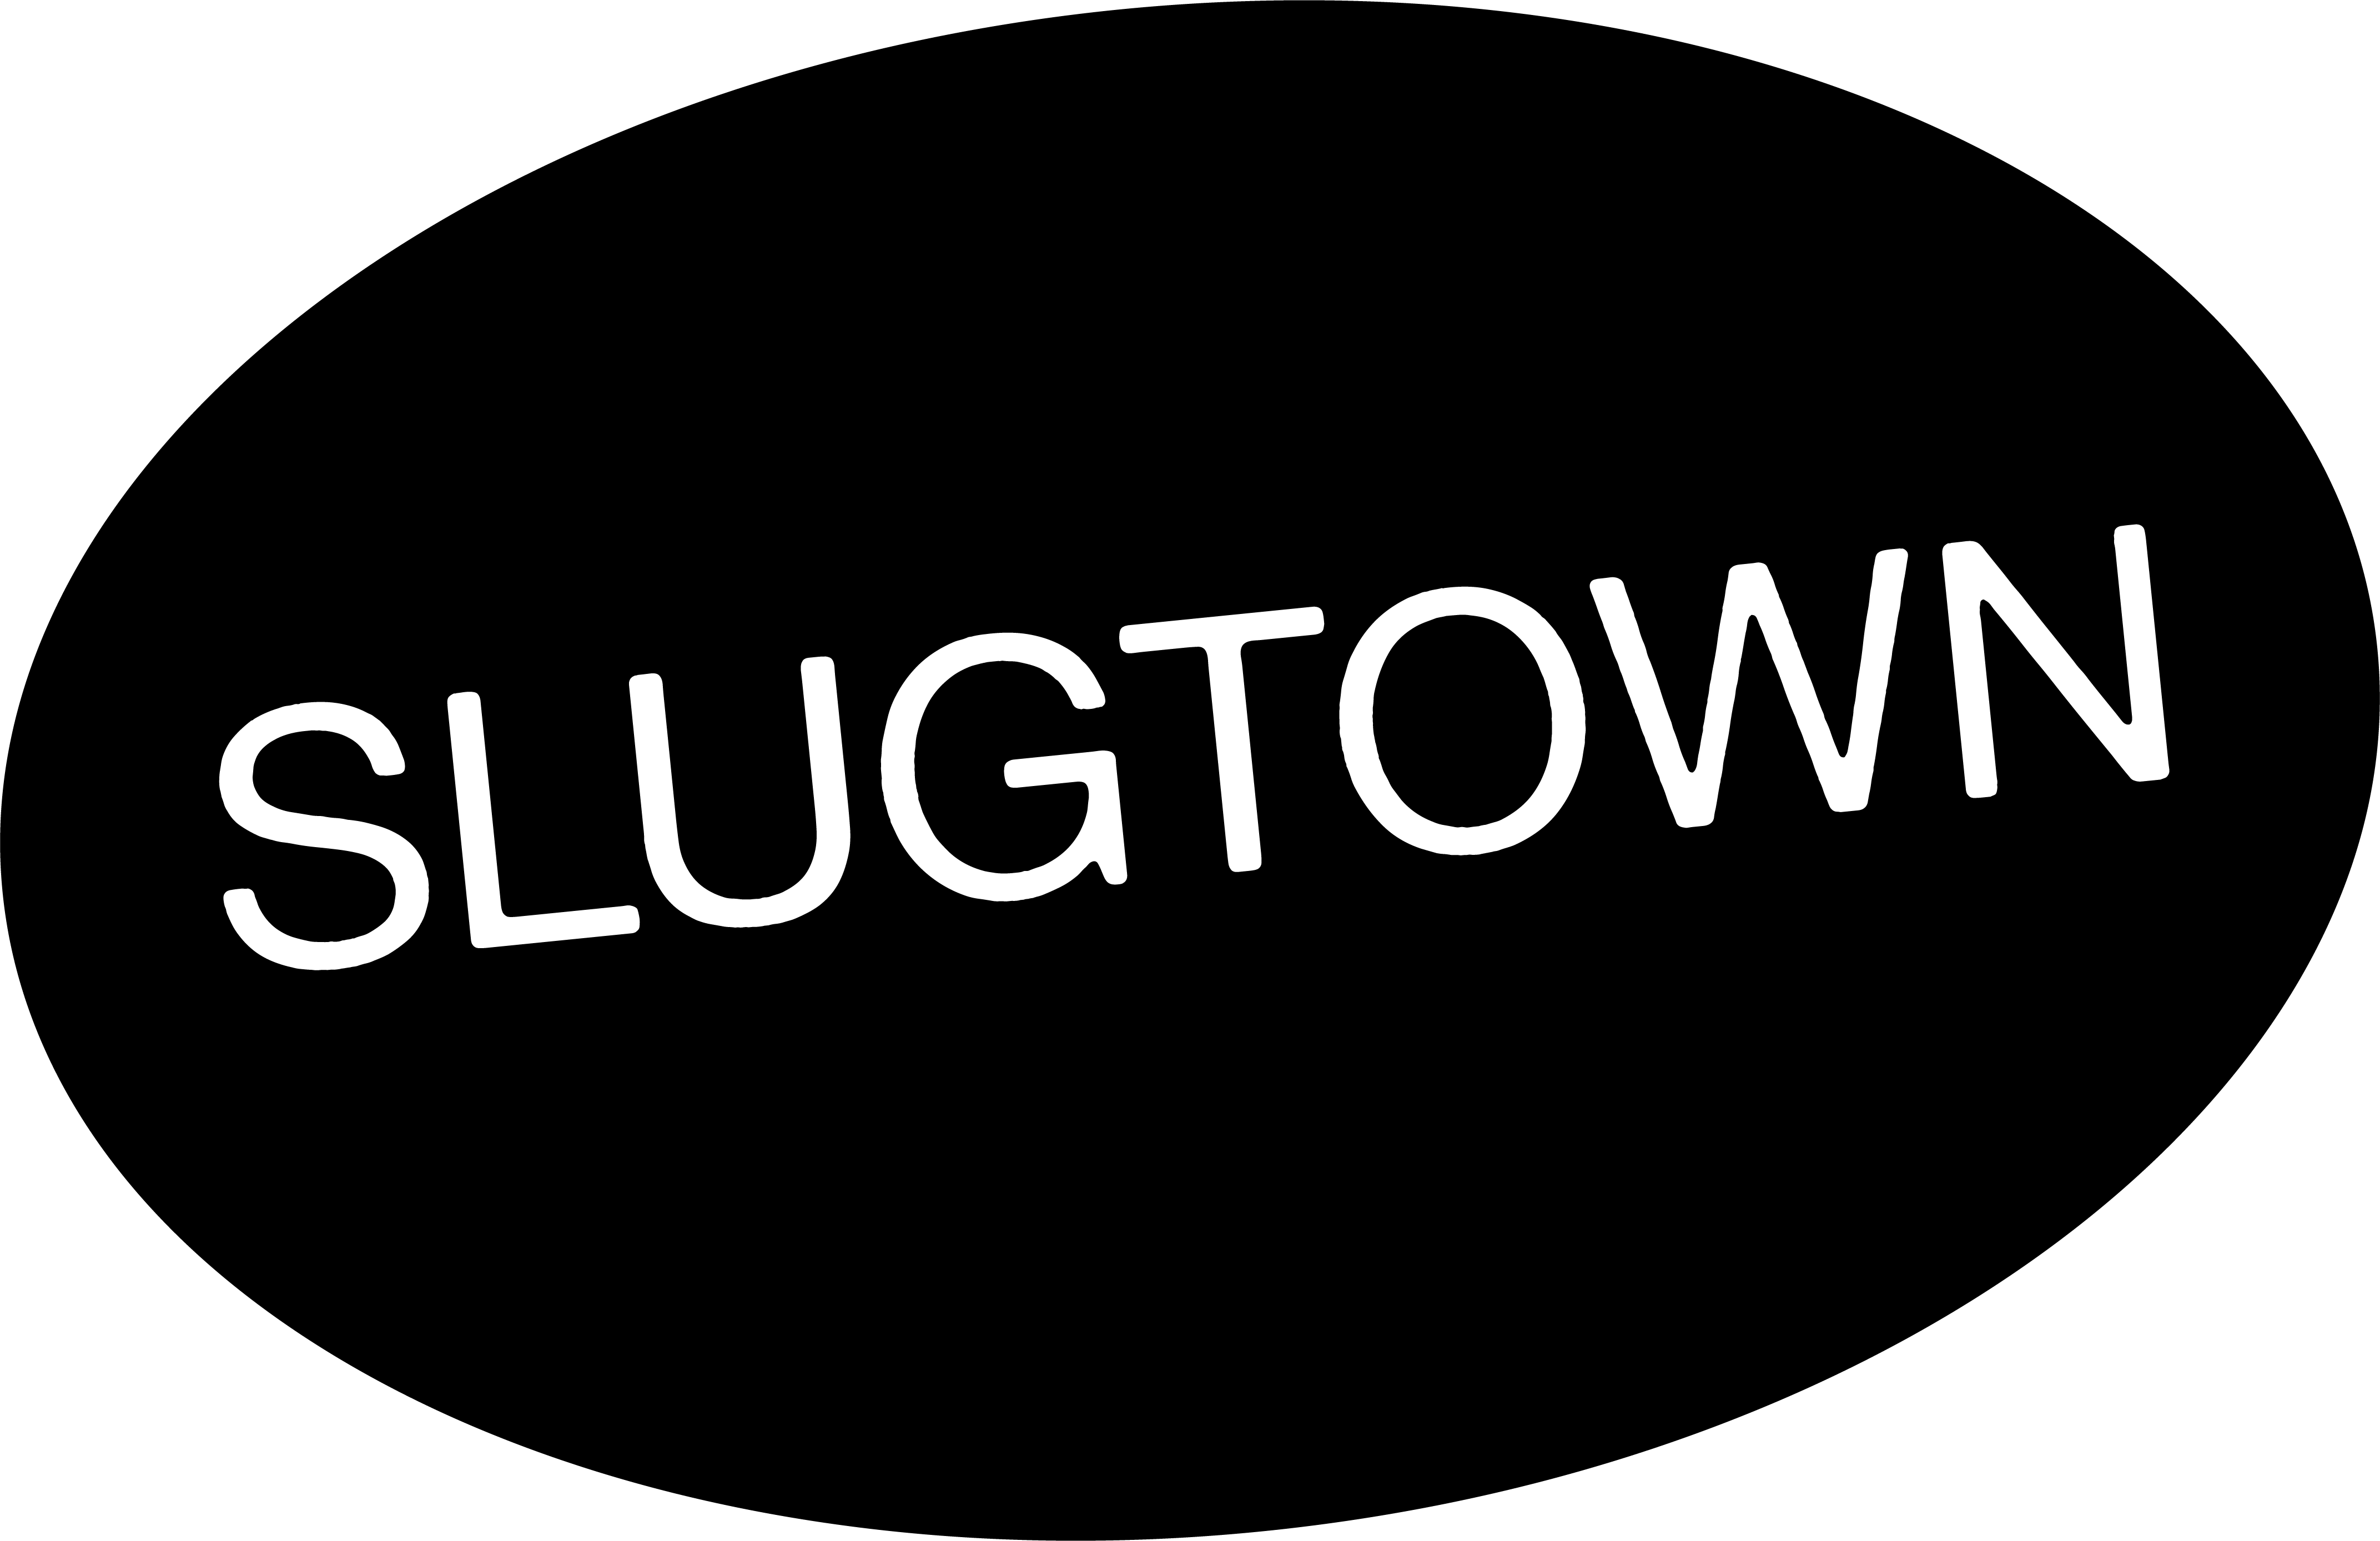 Slugtown logo